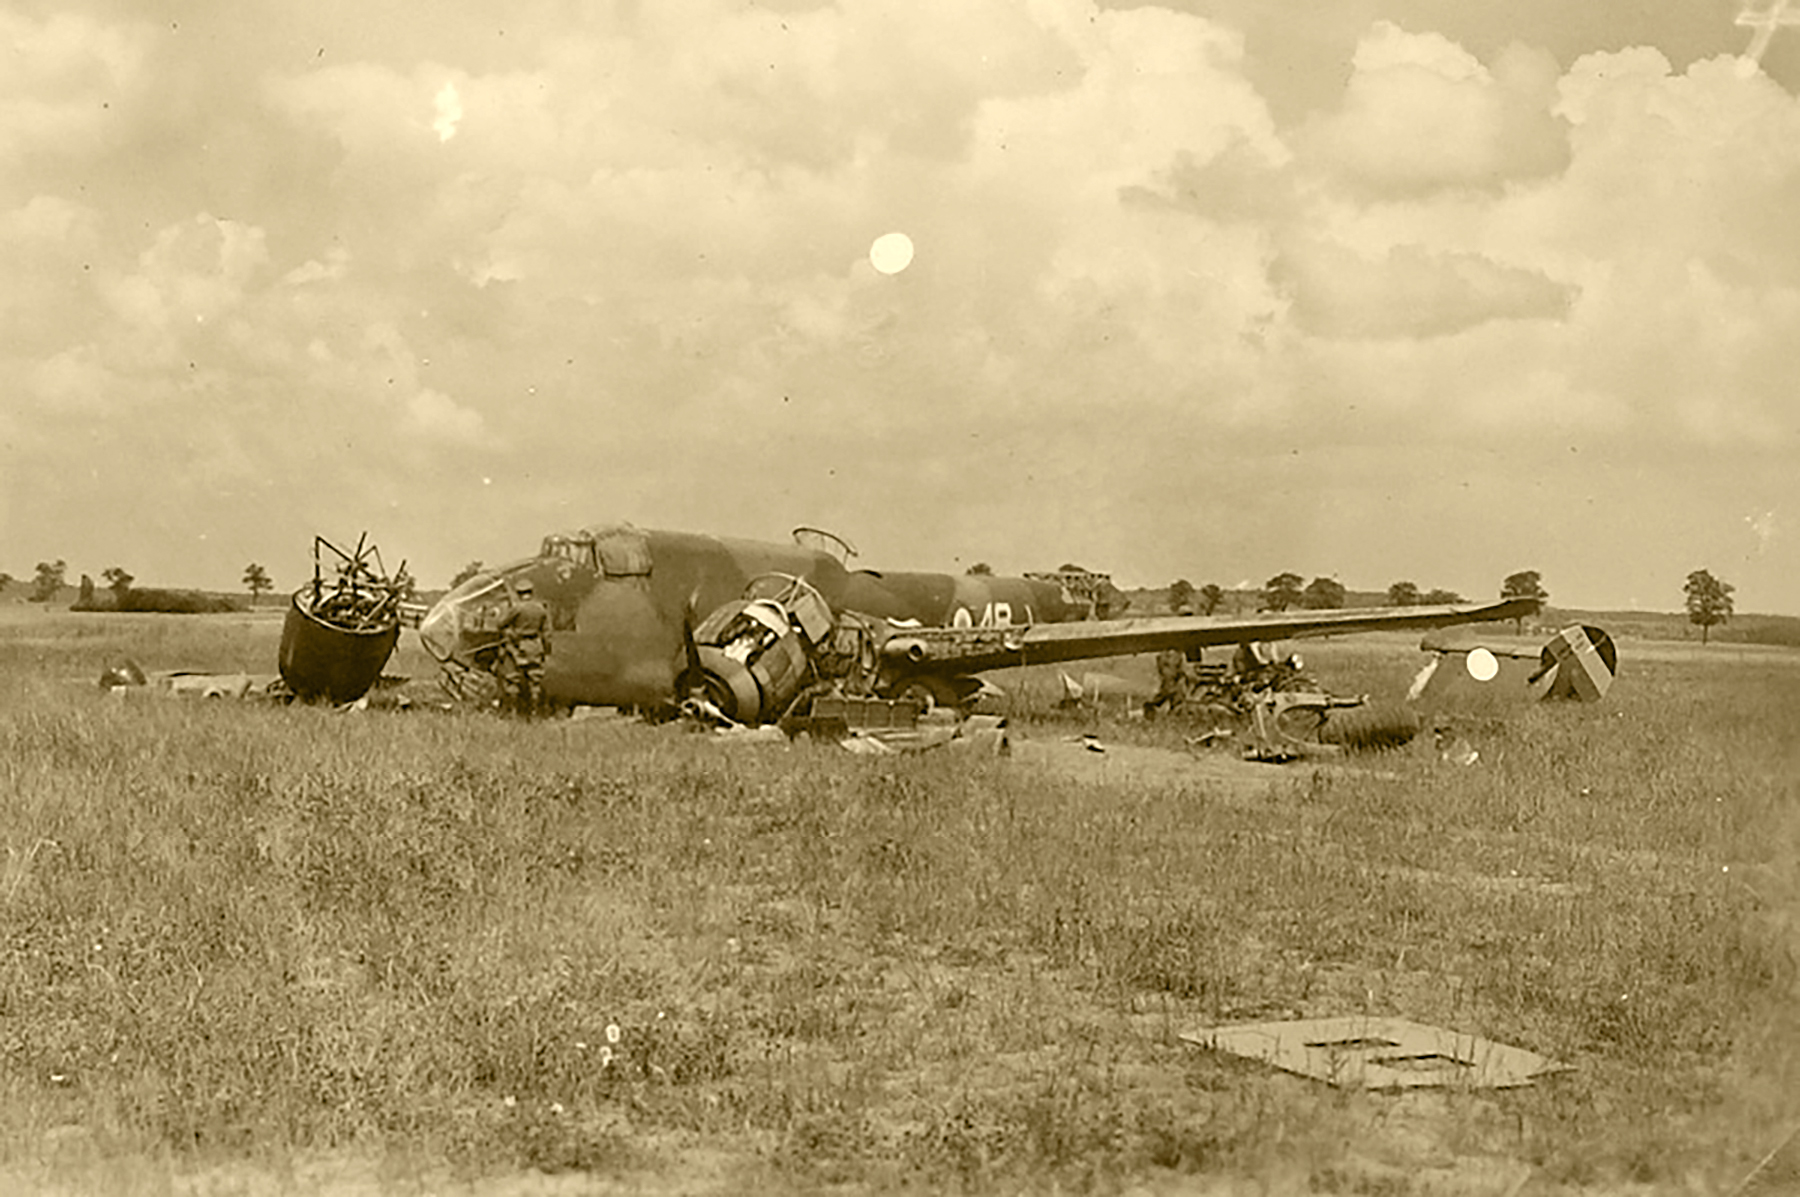 French Airforce Liore et Olivier LeO 451 White 48 force landing France May Jun 1940 ebay 01